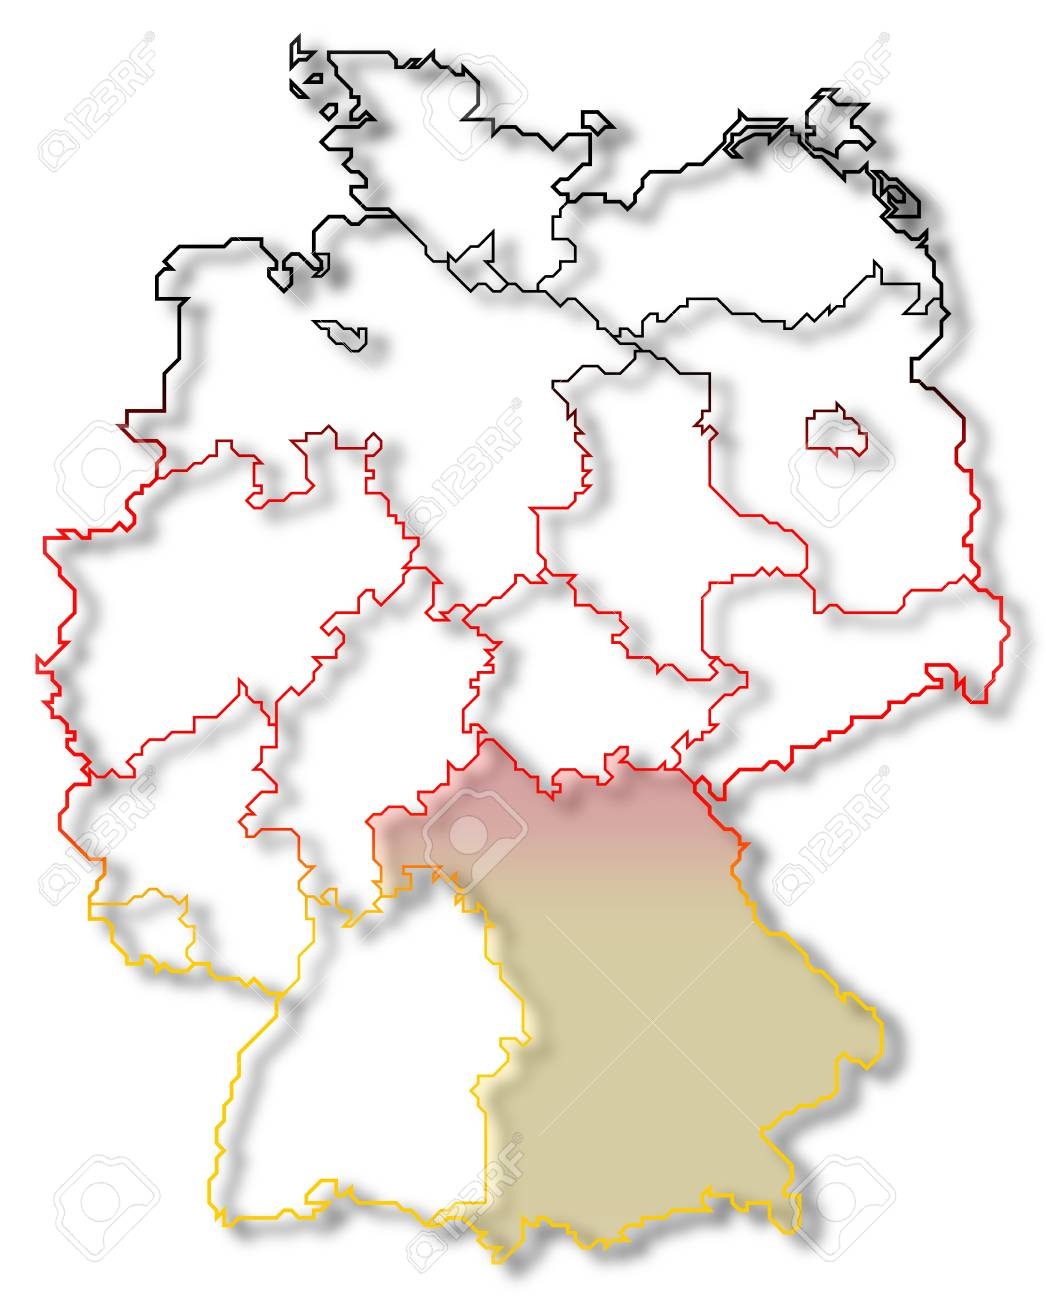 Map Of Germany Bavaria.Political Map Of Germany With The Several States Where Bavaria